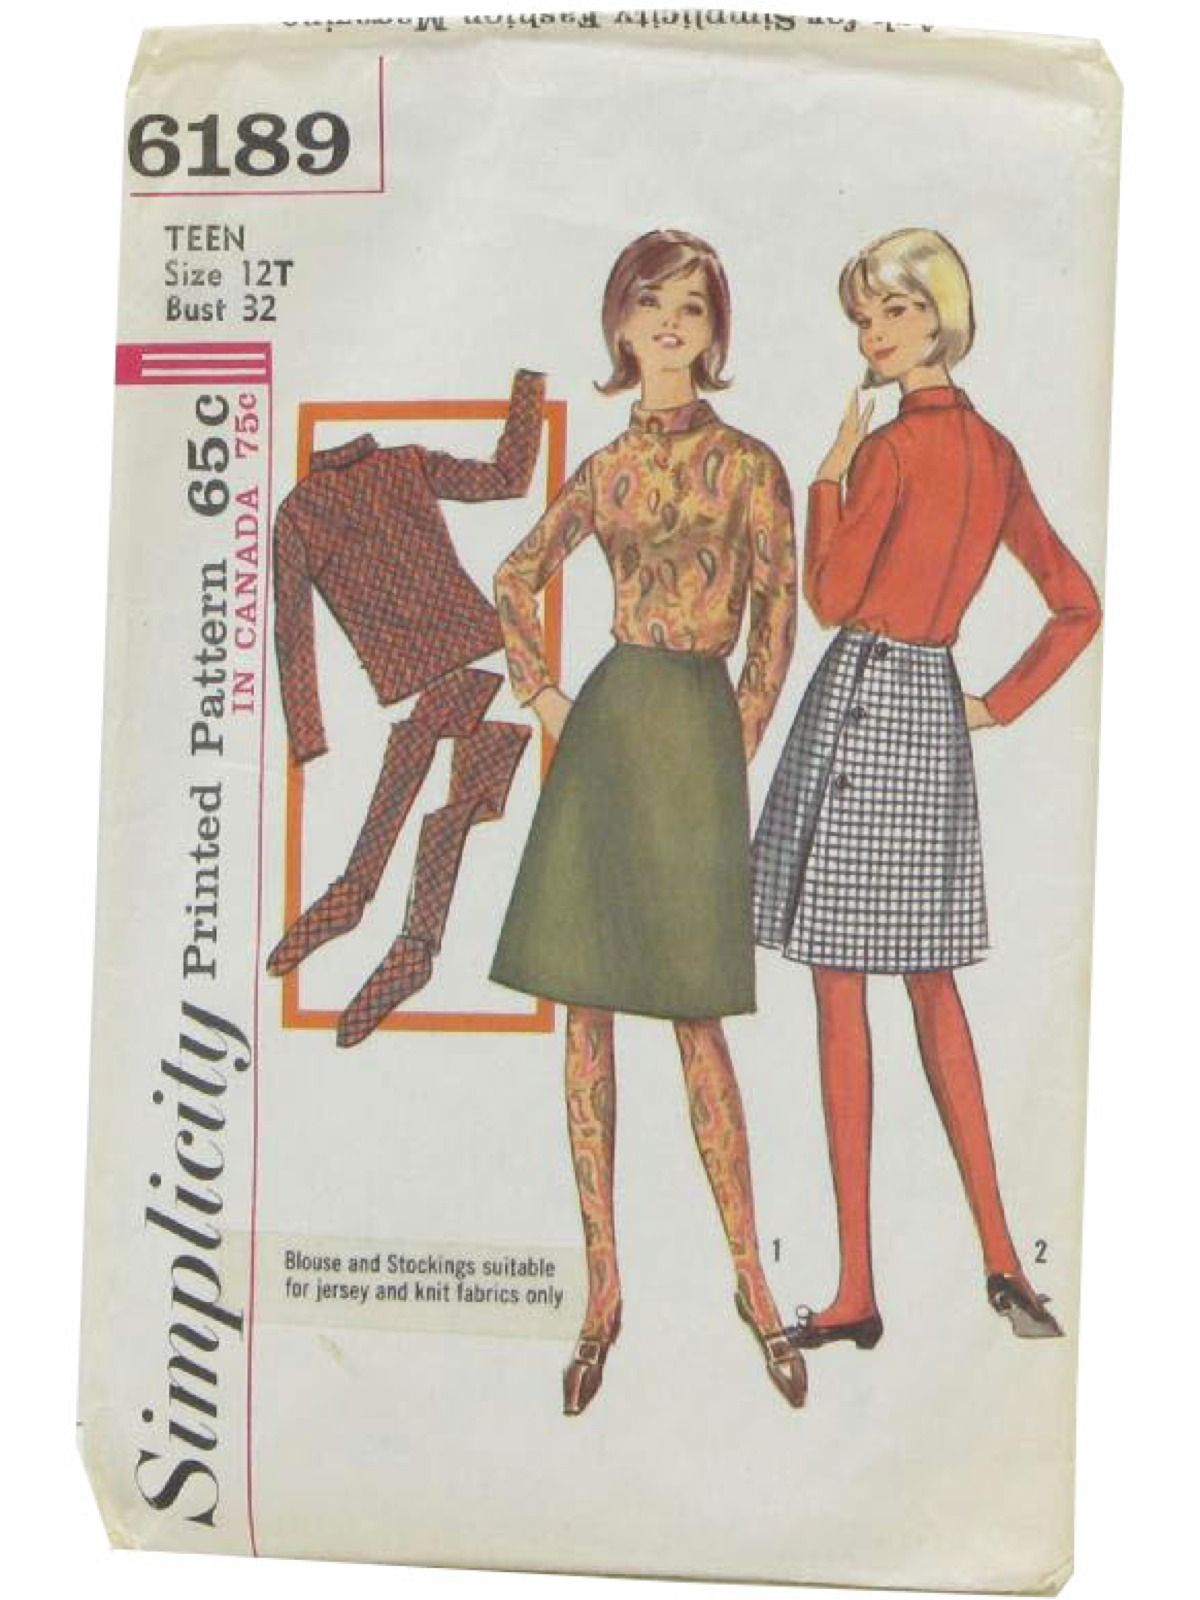 Vintage simplicity 6189 sixties sewing pattern 1965 simplicity vintage simplicity 6189 sixties sewing pattern 1965 simplicity 6189 womens sewing pattern for jeuxipadfo Choice Image